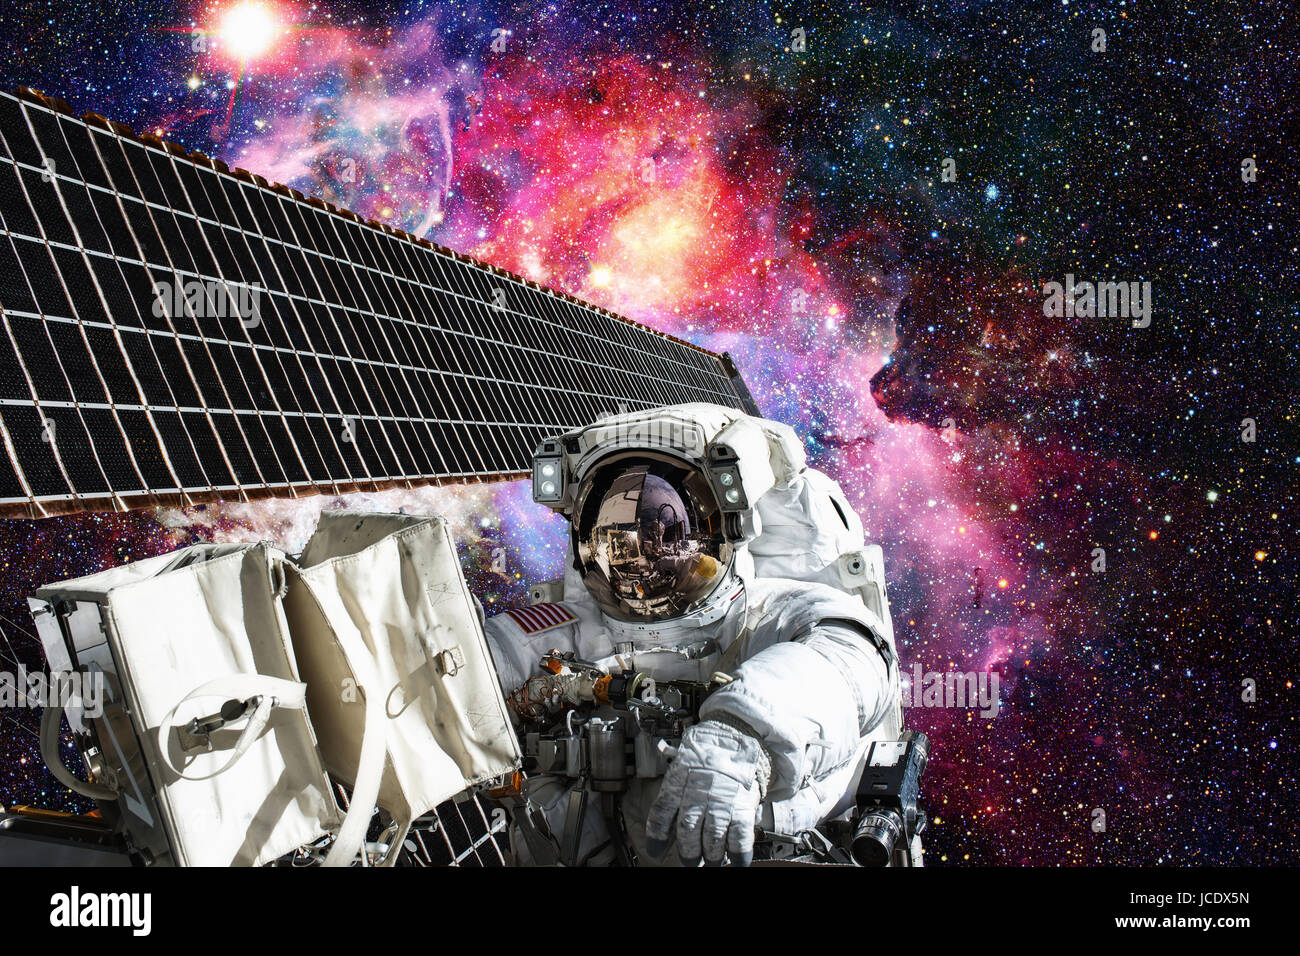 Cosmonaut works outside the International Space Station. Elements of this image furnished by NASA. - Stock Image